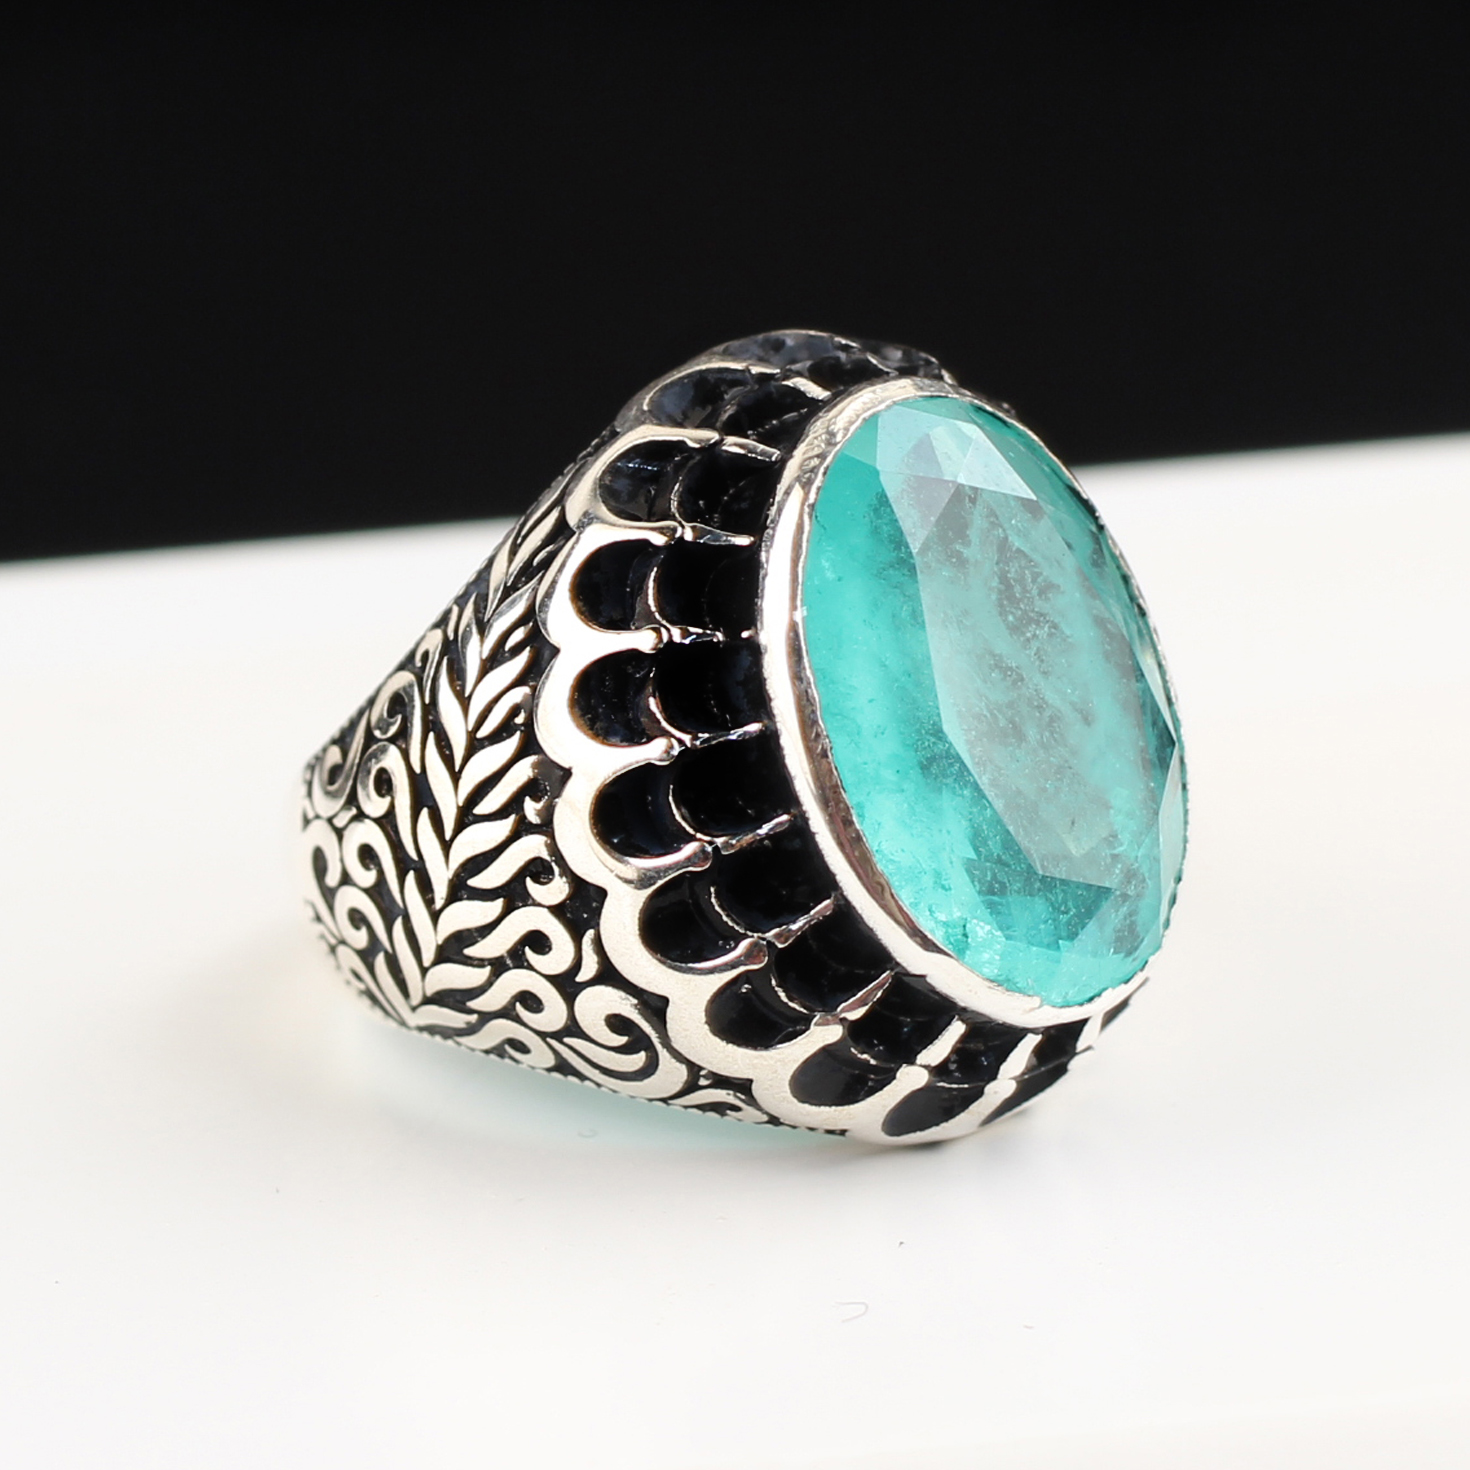 Man Ring 925 Sterling Silver Ring with Blue Parabia Tourmaline Handmade Silver Ring,Vintage Style Jewelry Gift for Him